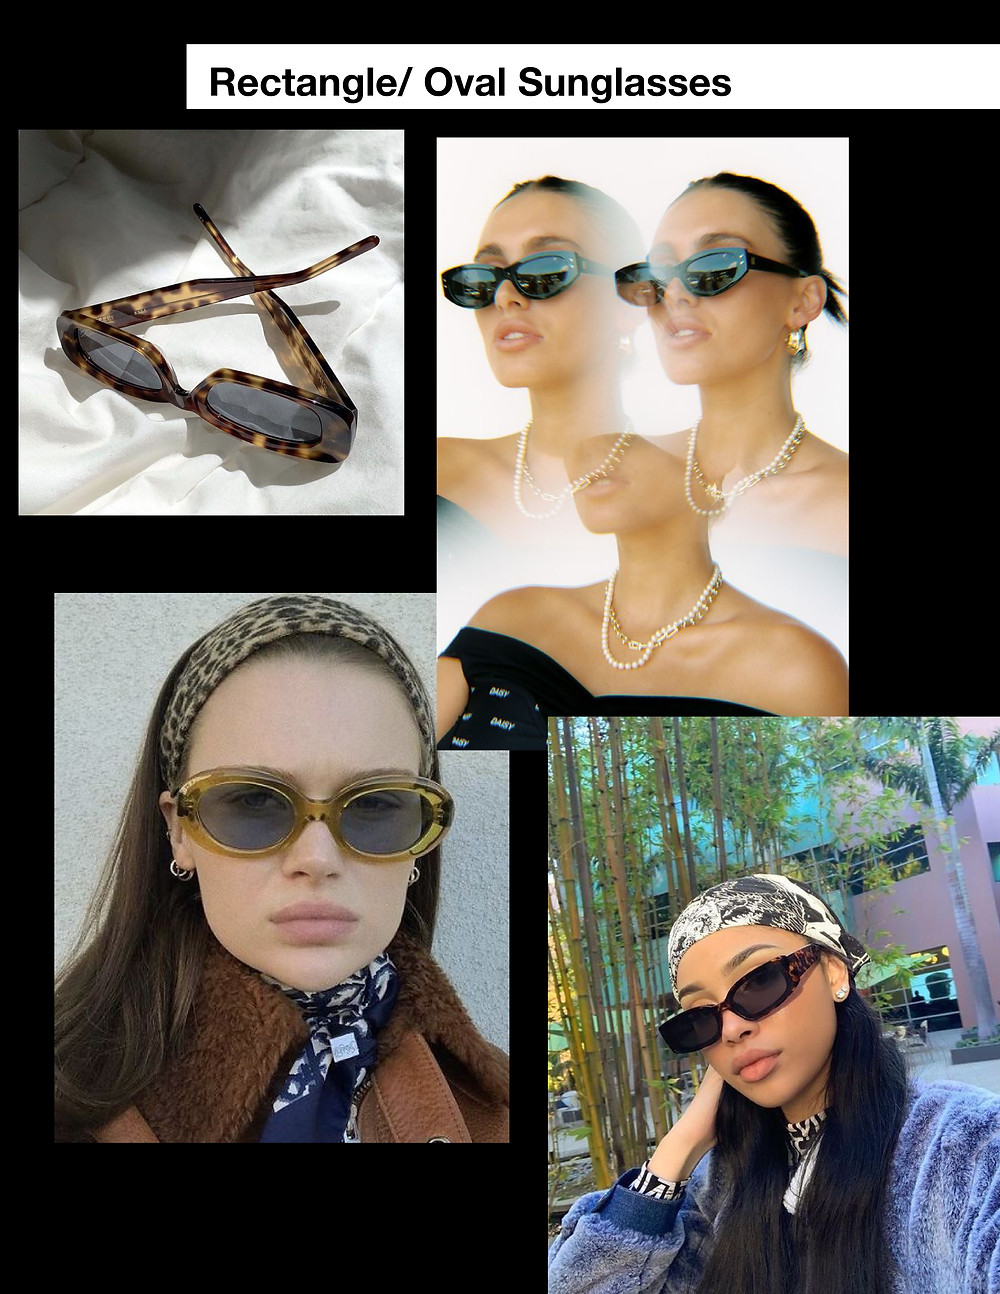 Rectangle sunglasses, oval sunglasses, summer, fashion, shopping, trends, style, stylist